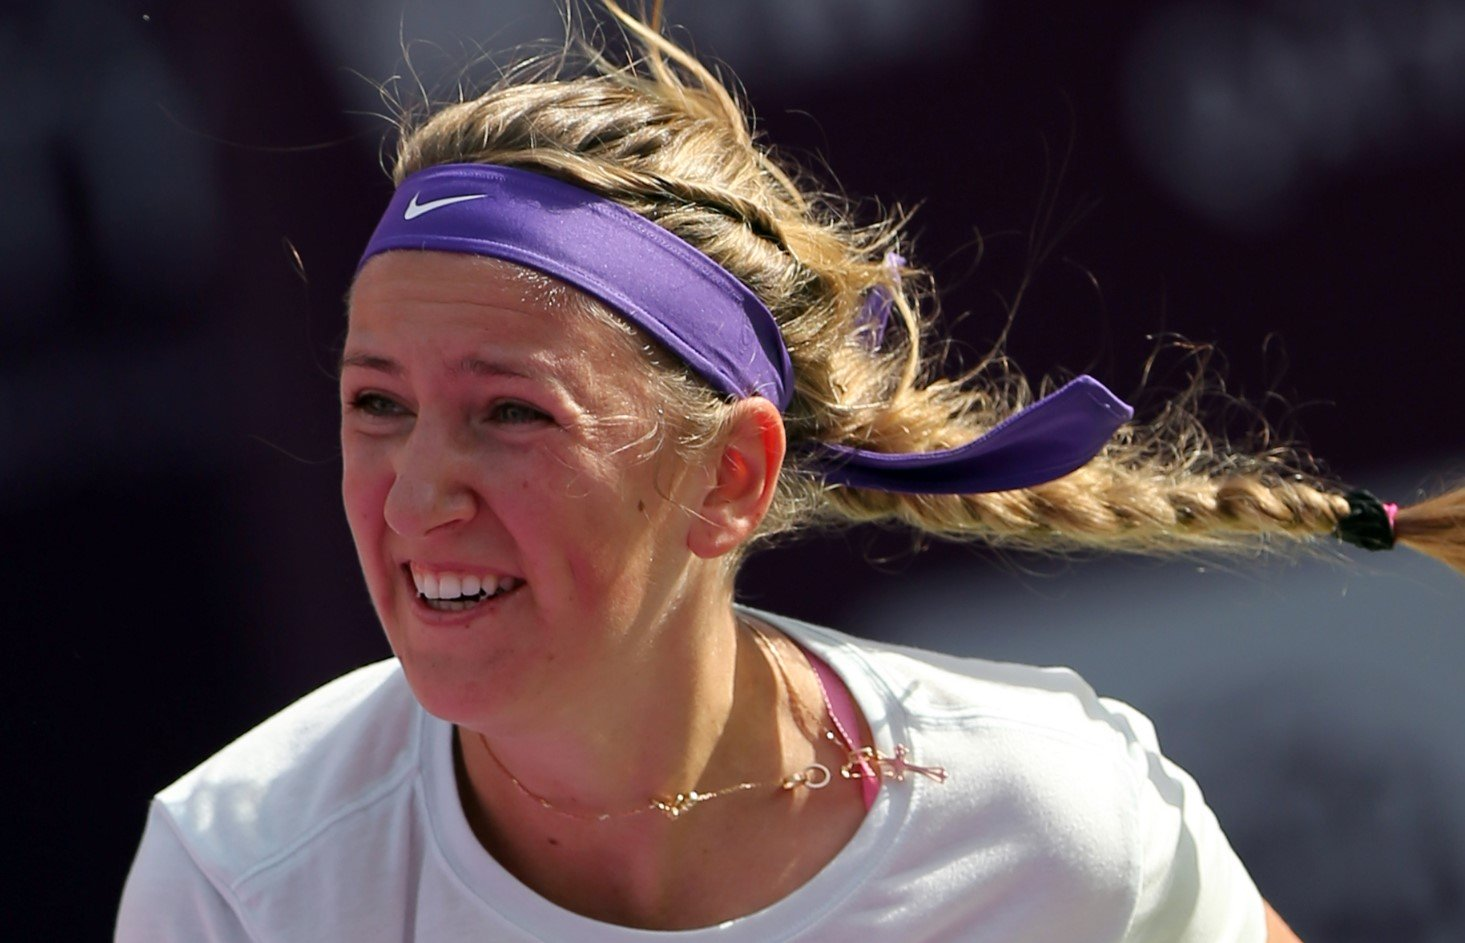 What did Vika Azarenka do six months while not playing tennis?